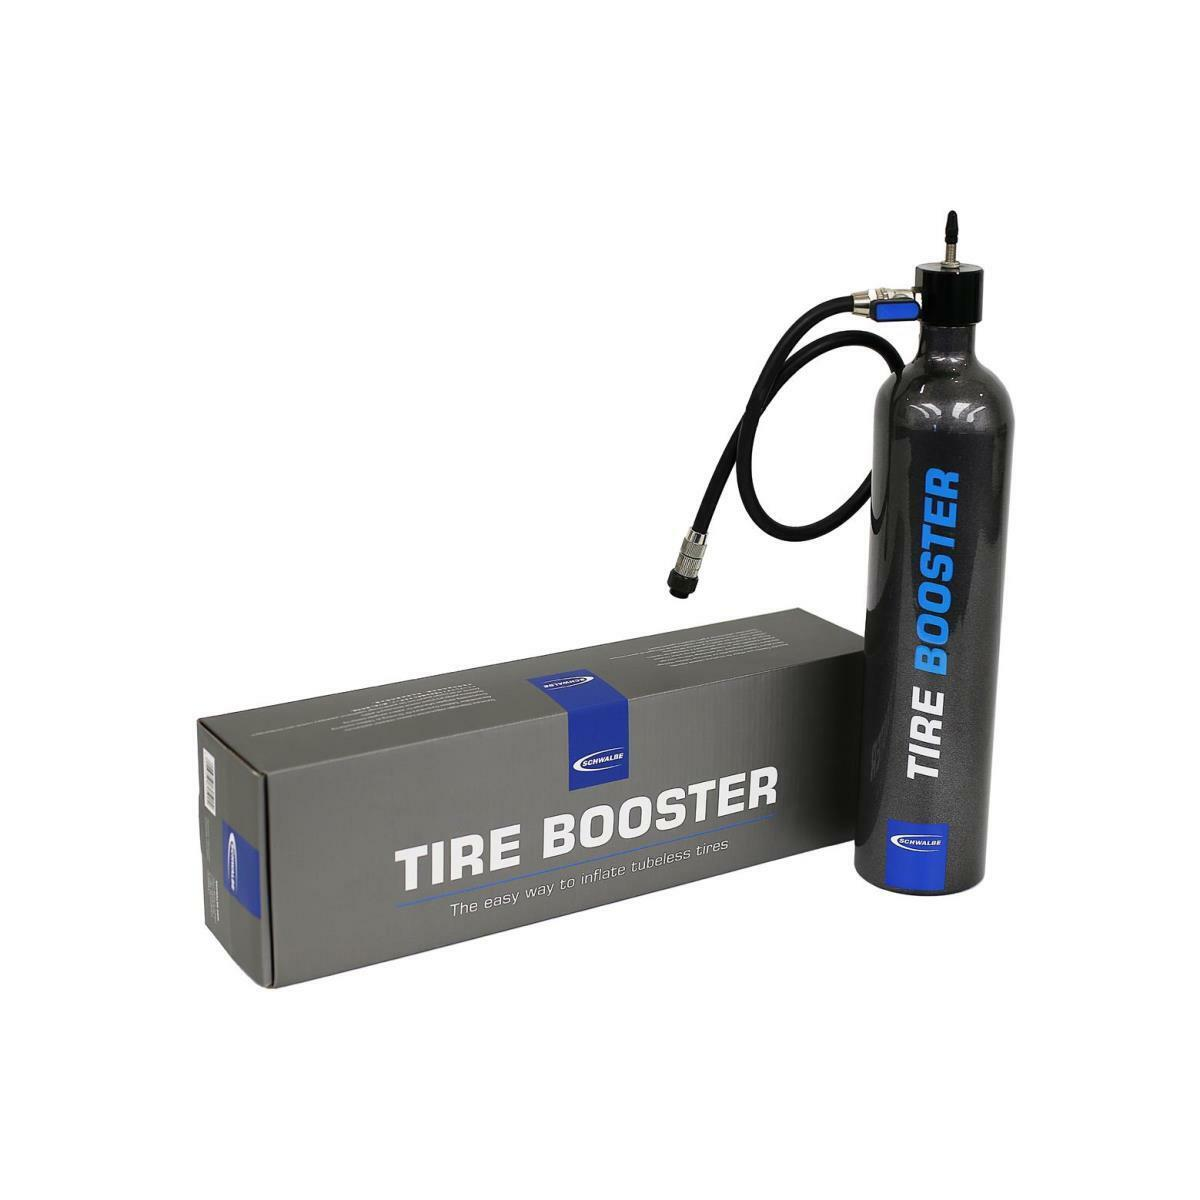 Pompa per tallonatura tubeless tire booster 11 bar 6080.01  SCHWALBE bicicletta  everyday low prices